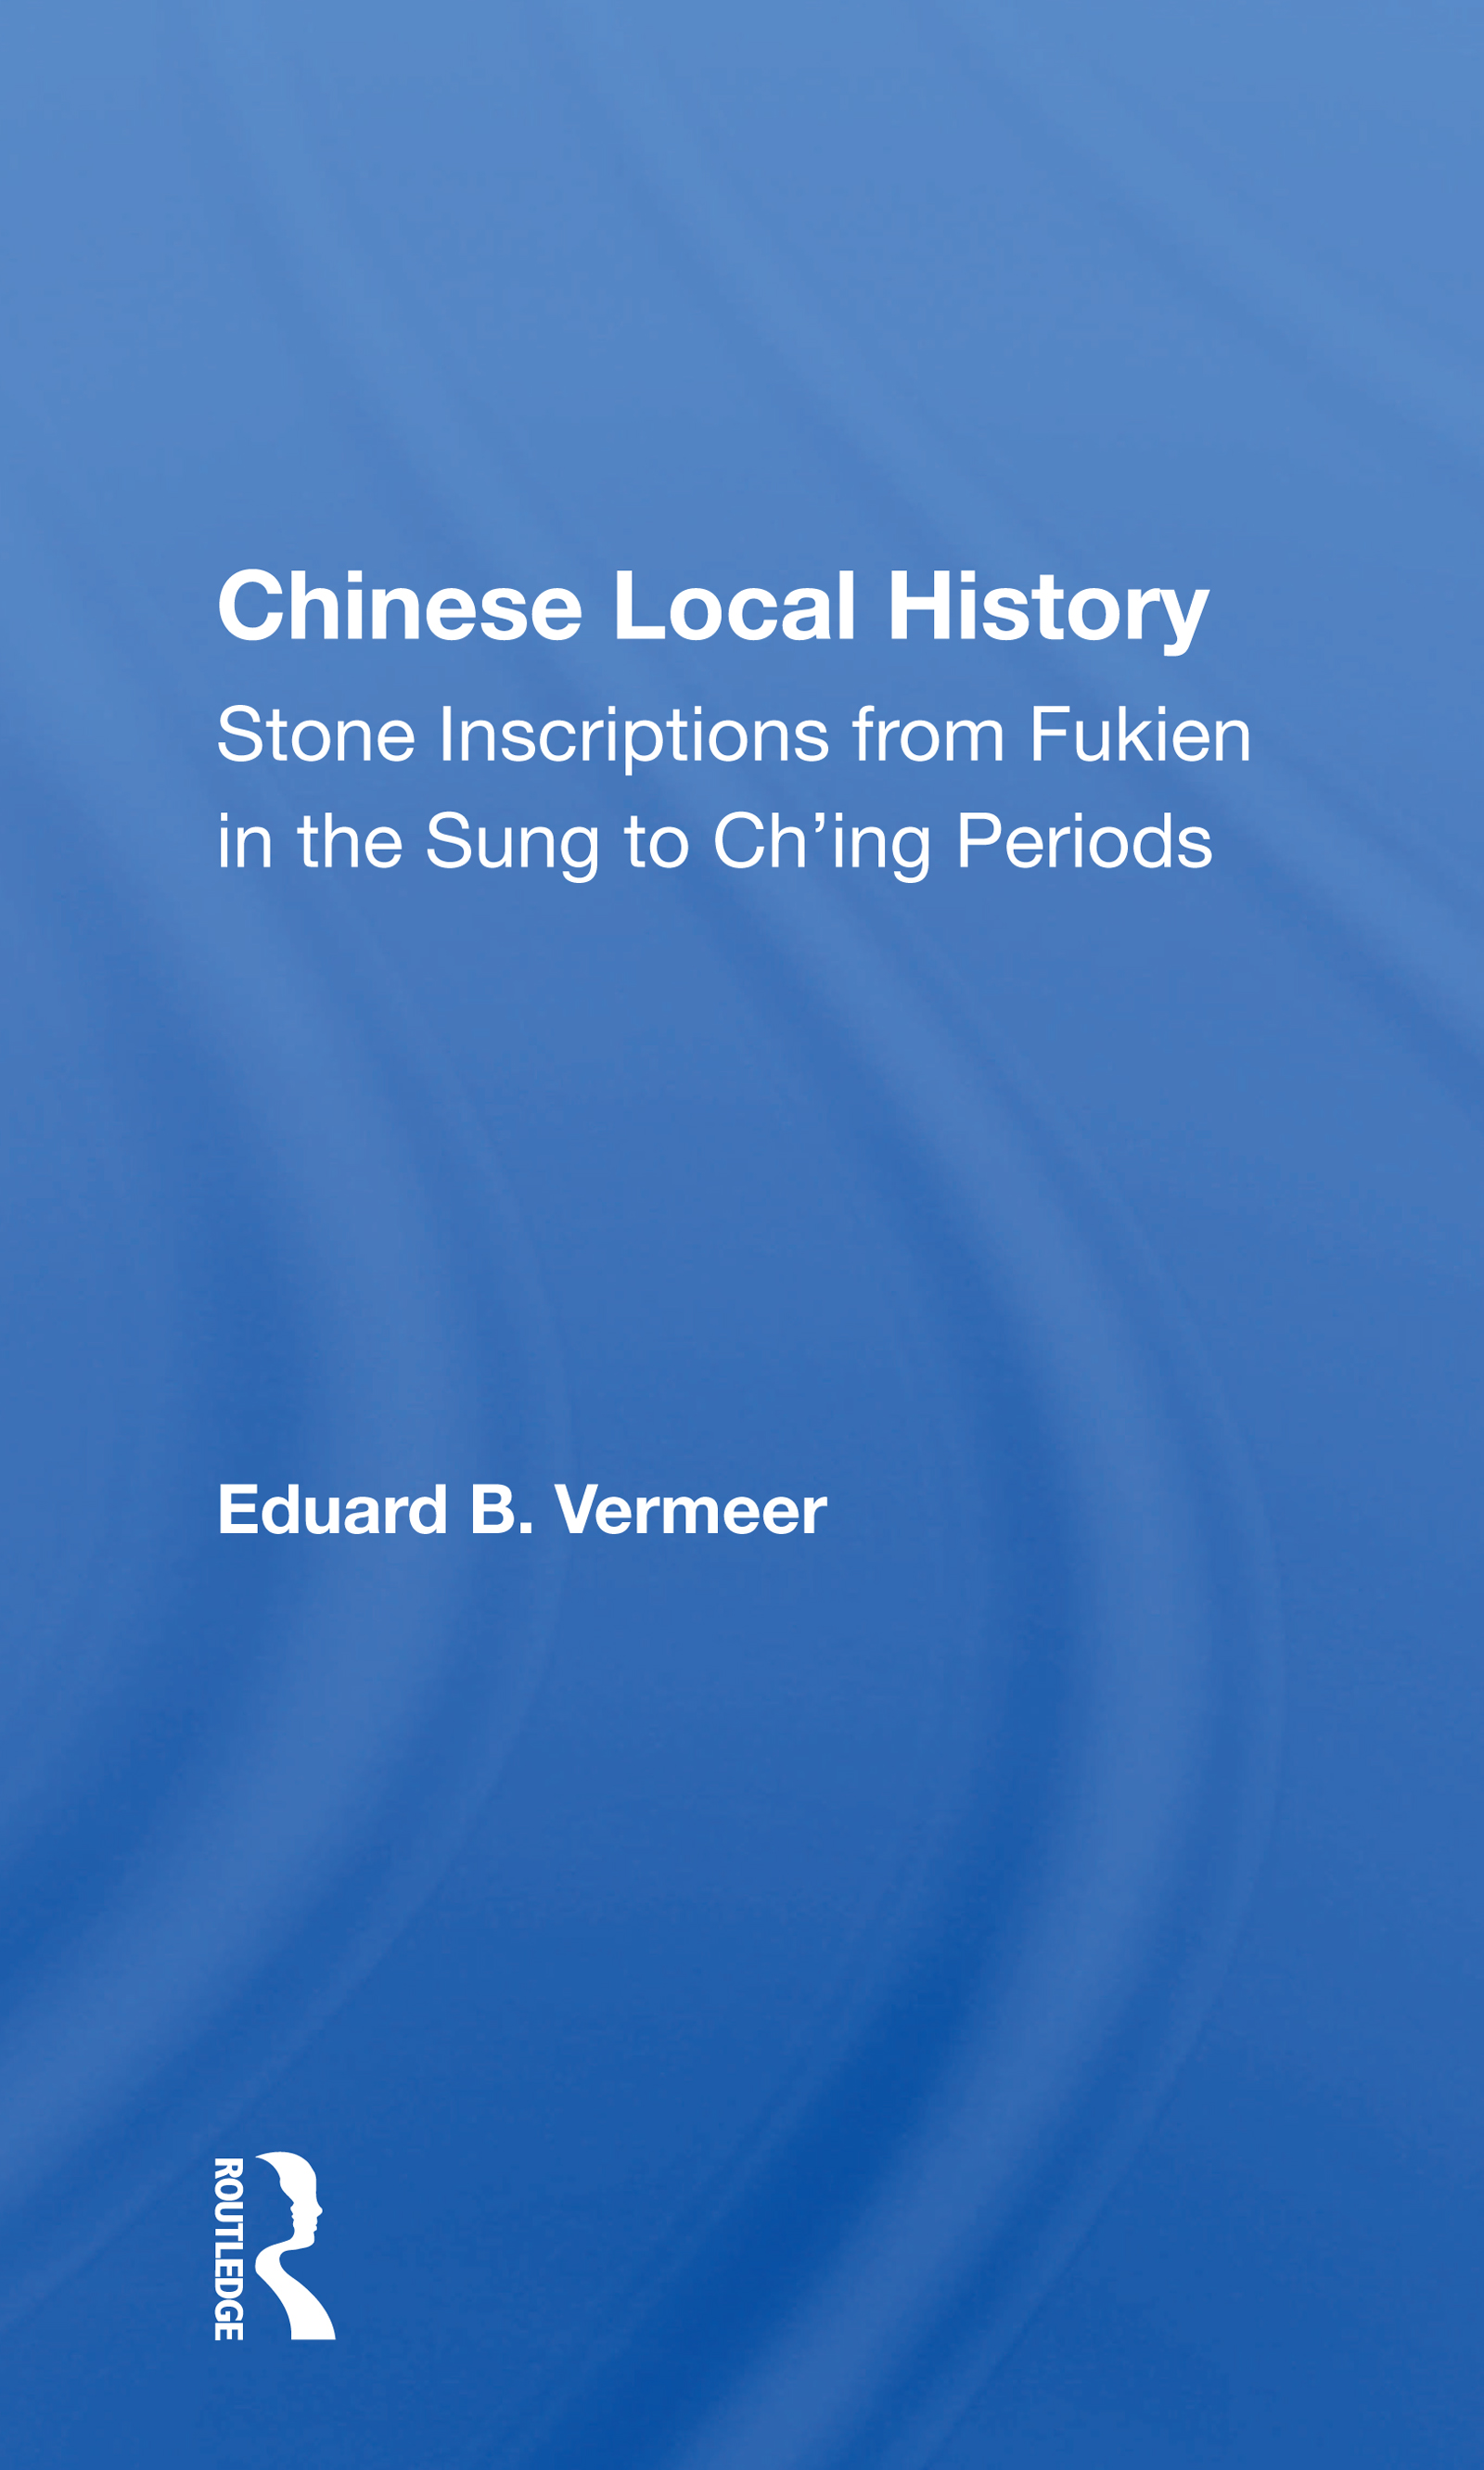 Chinese Local History